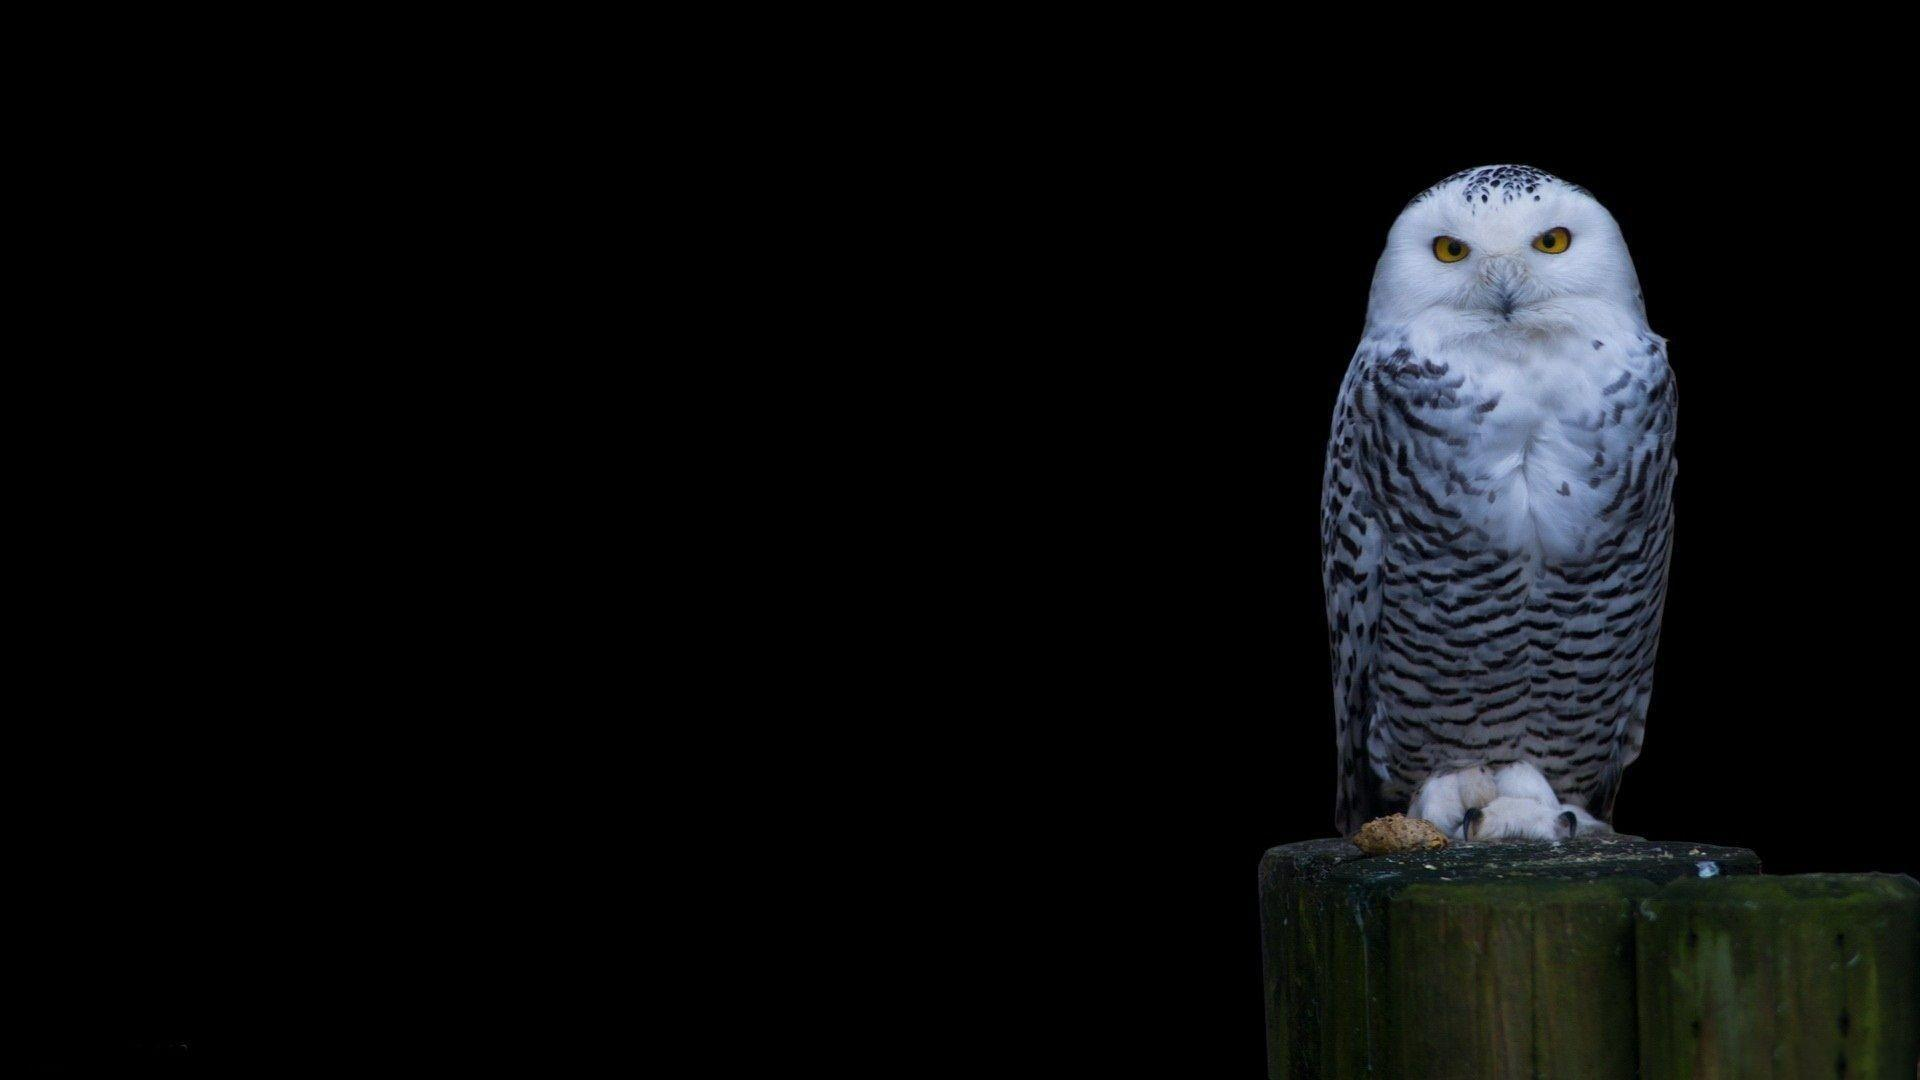 owl wallpaper desktop 7 - photo #18